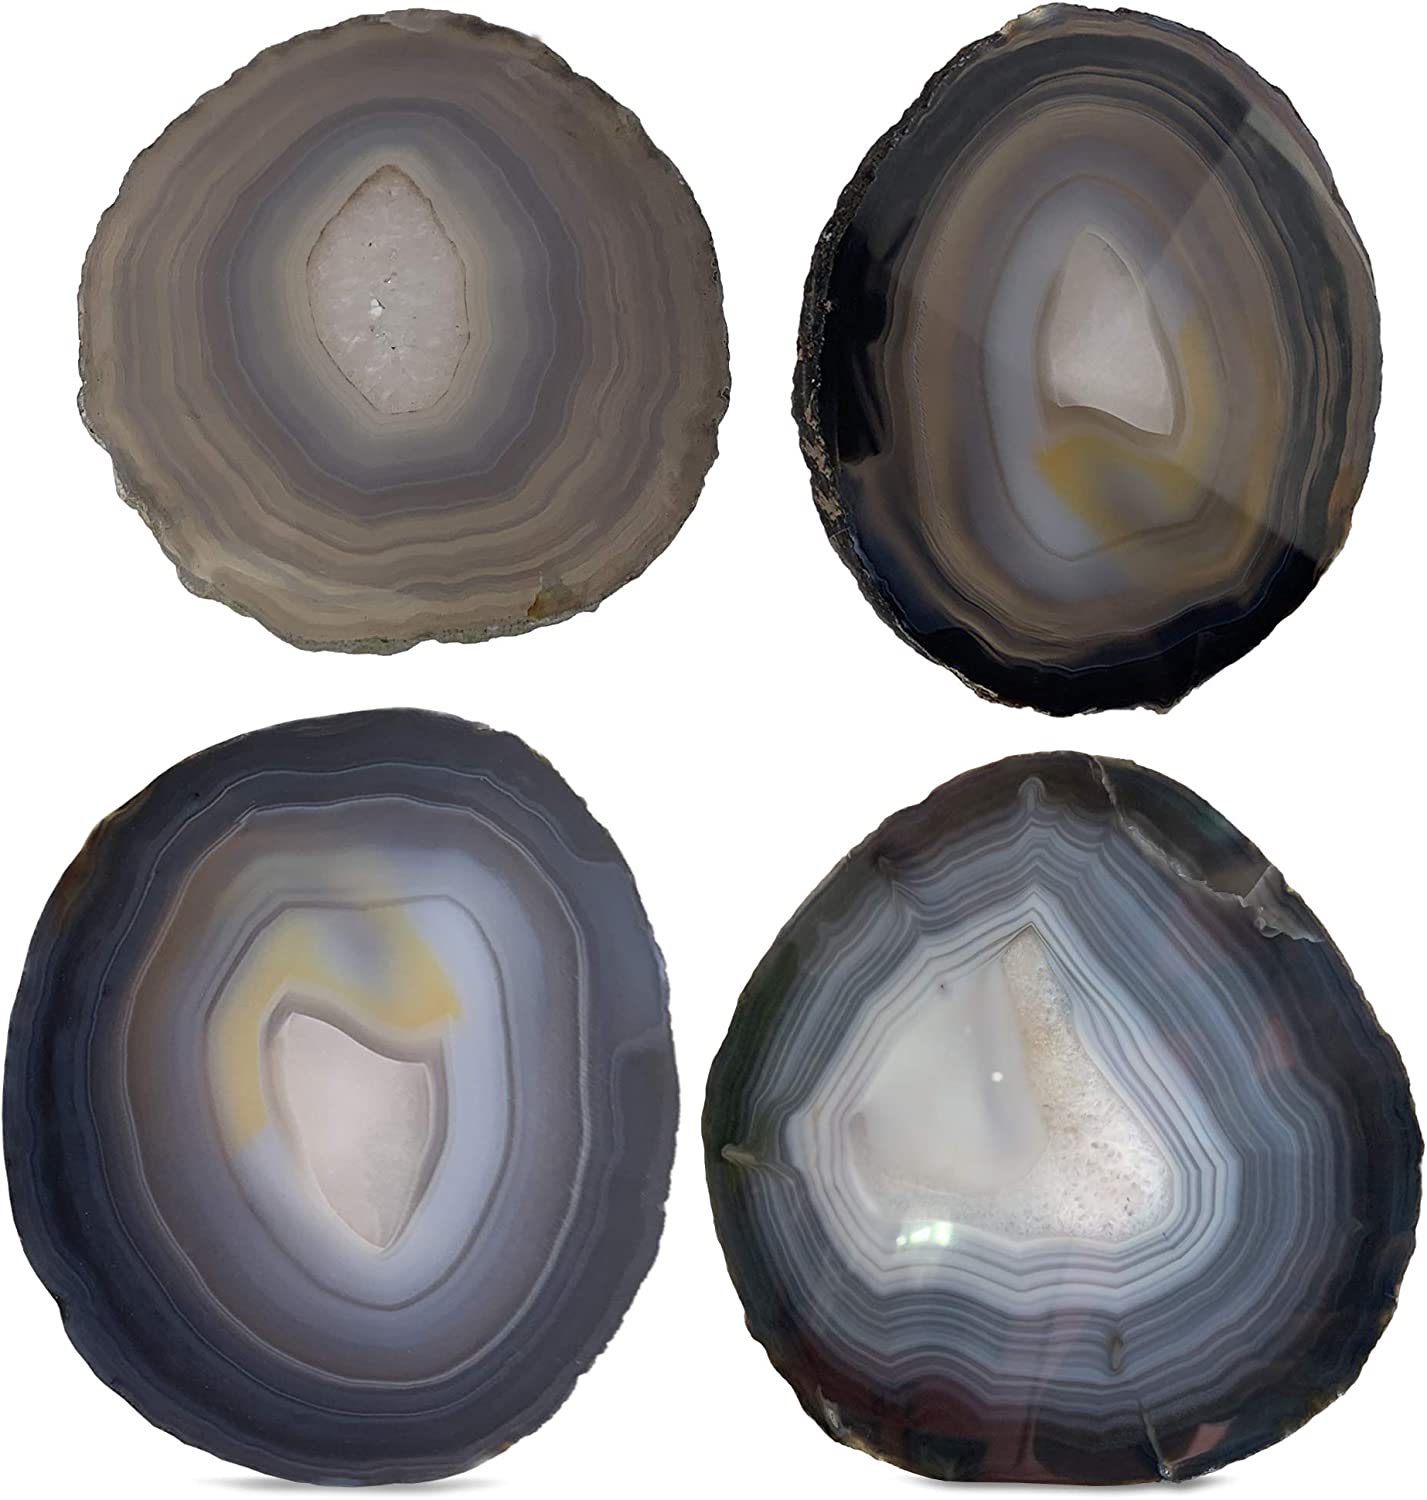 Gray Agate Coasters for Drinks - Set of 4 - Brazilian Geode Decor - (3.5